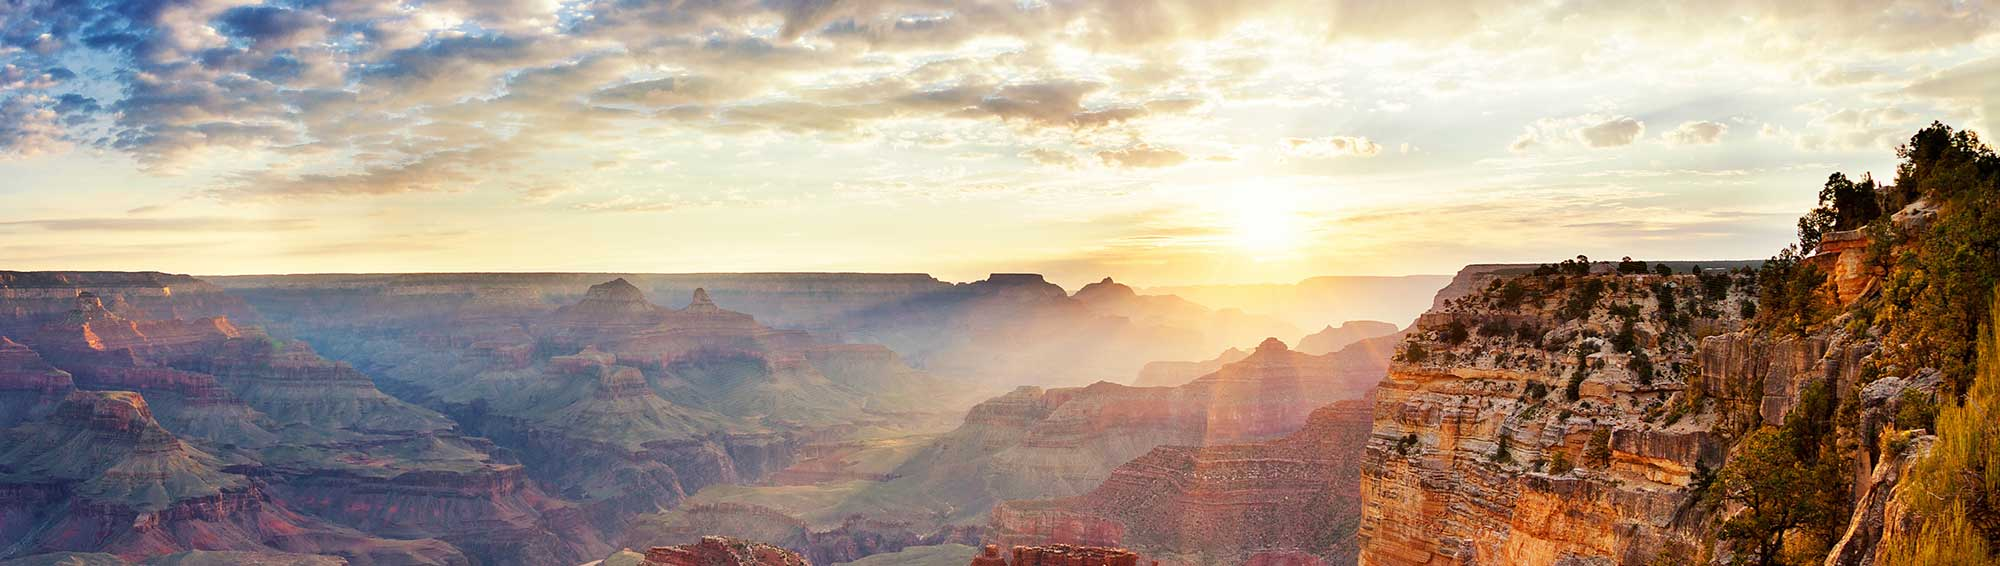 grand_canyon_visit_arizona